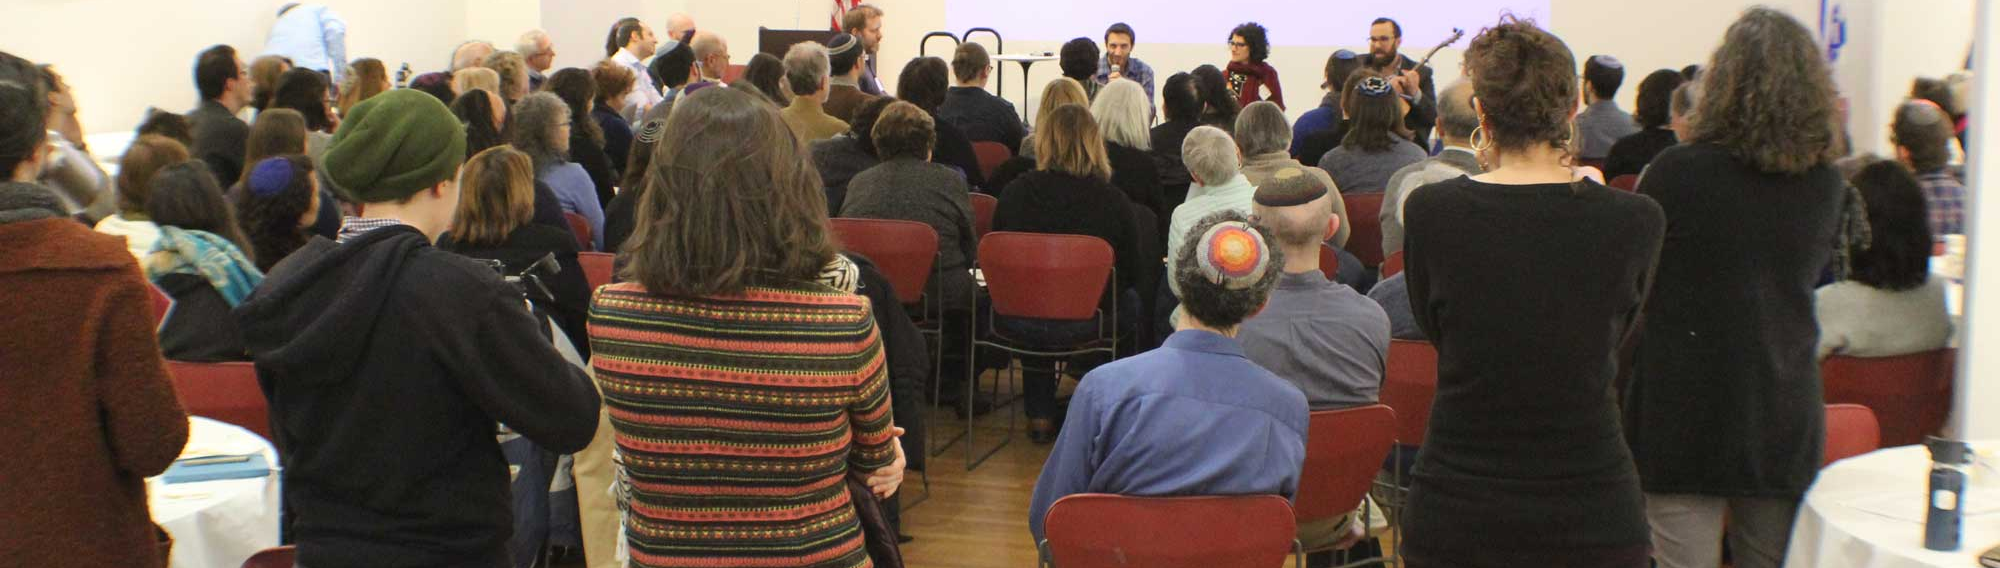 Hebrew College Panel Pic.png